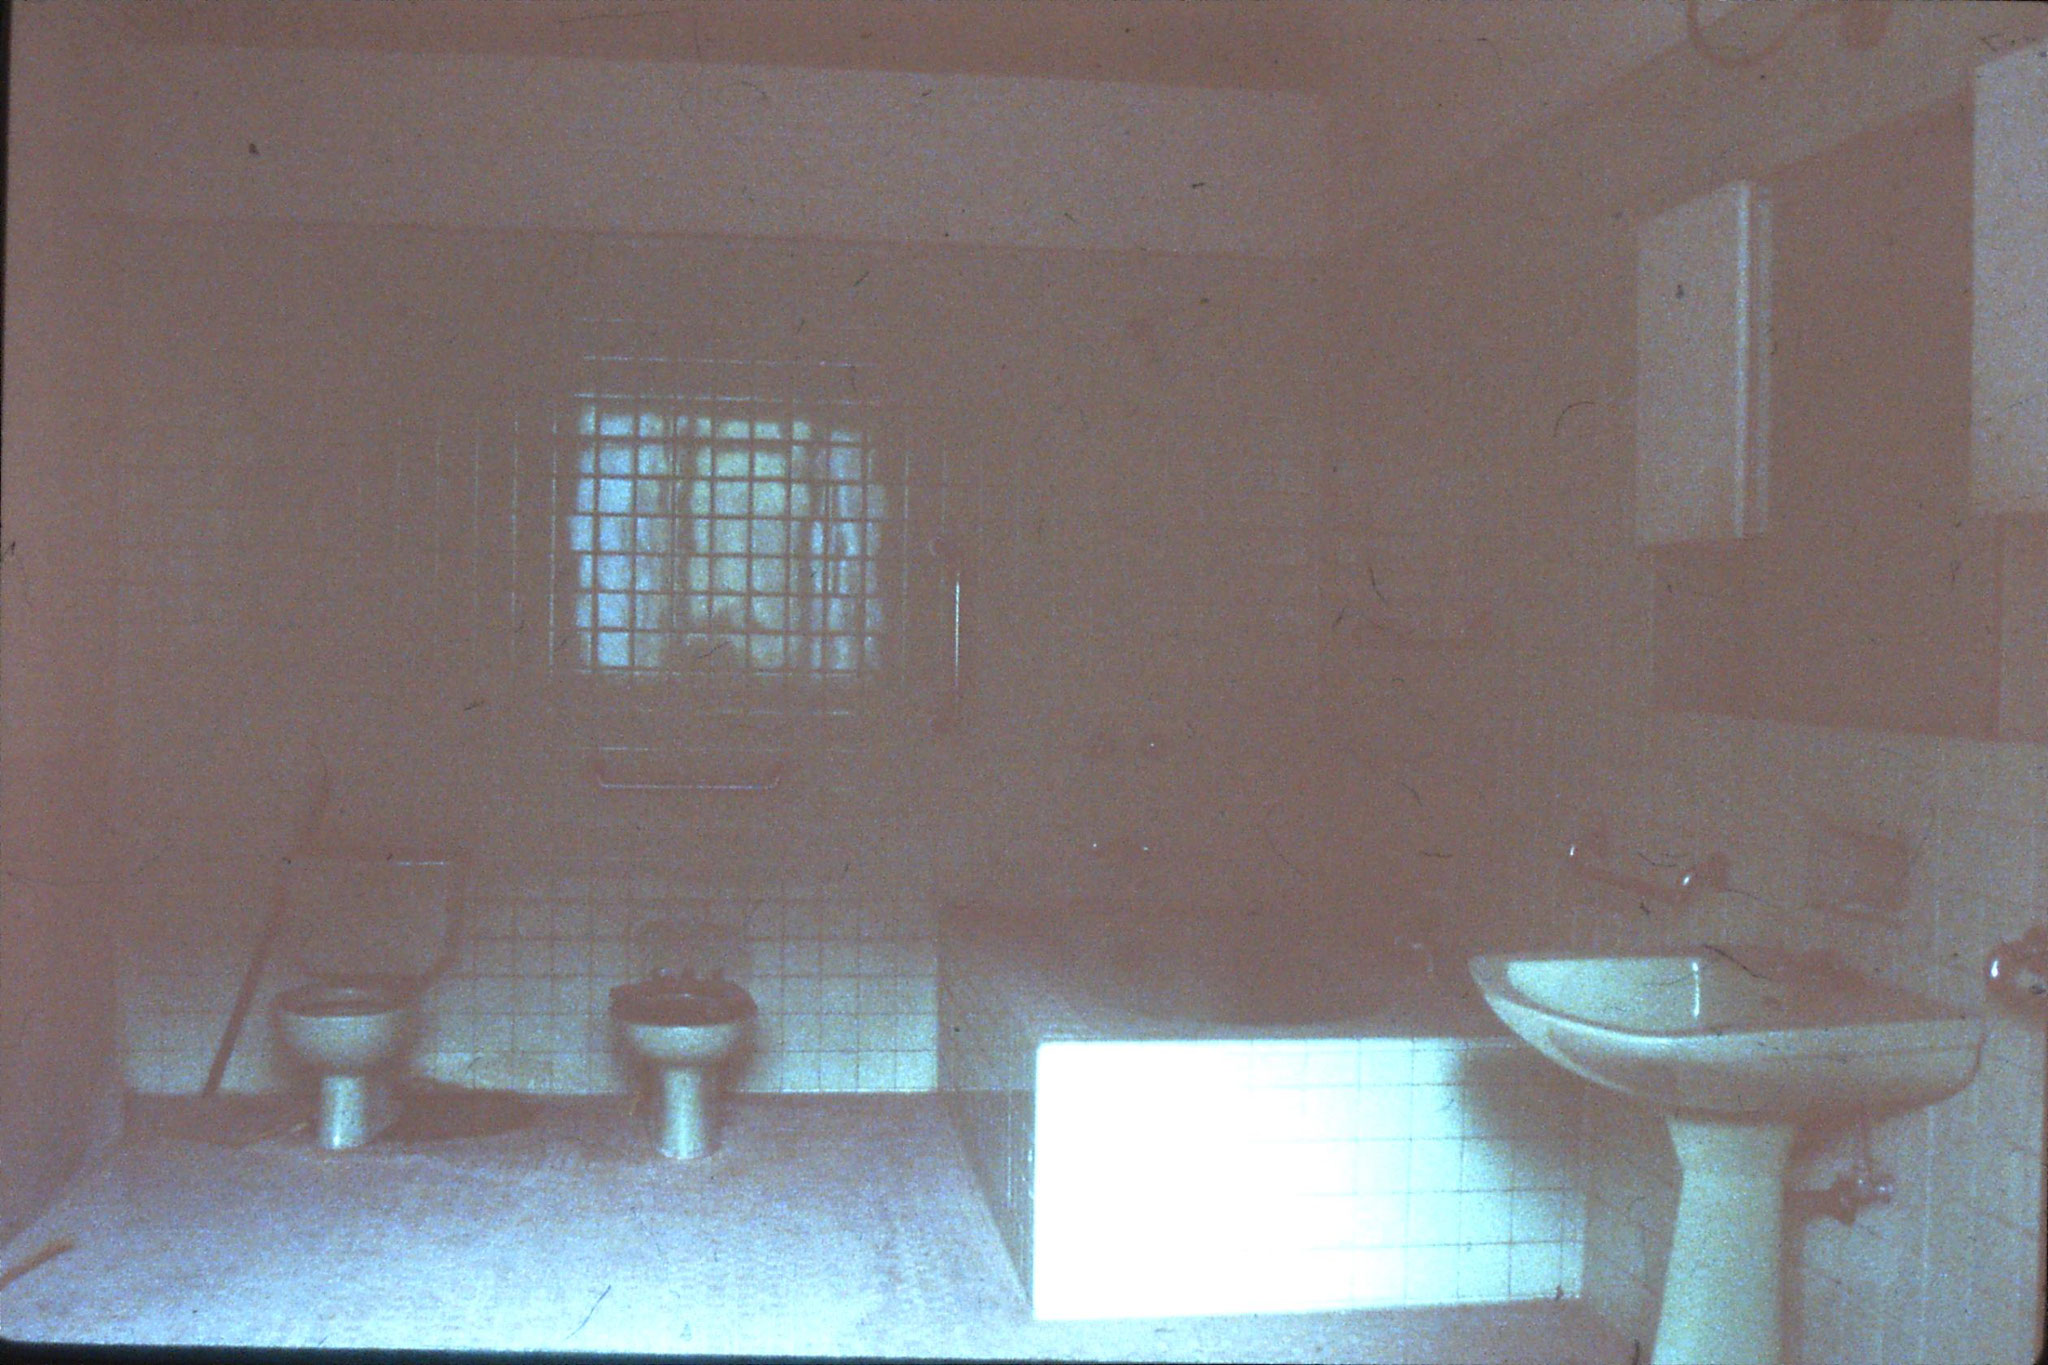 26/3/1989: 14: Lin Biao Mansion (Zhejiang Hotel) bathroom